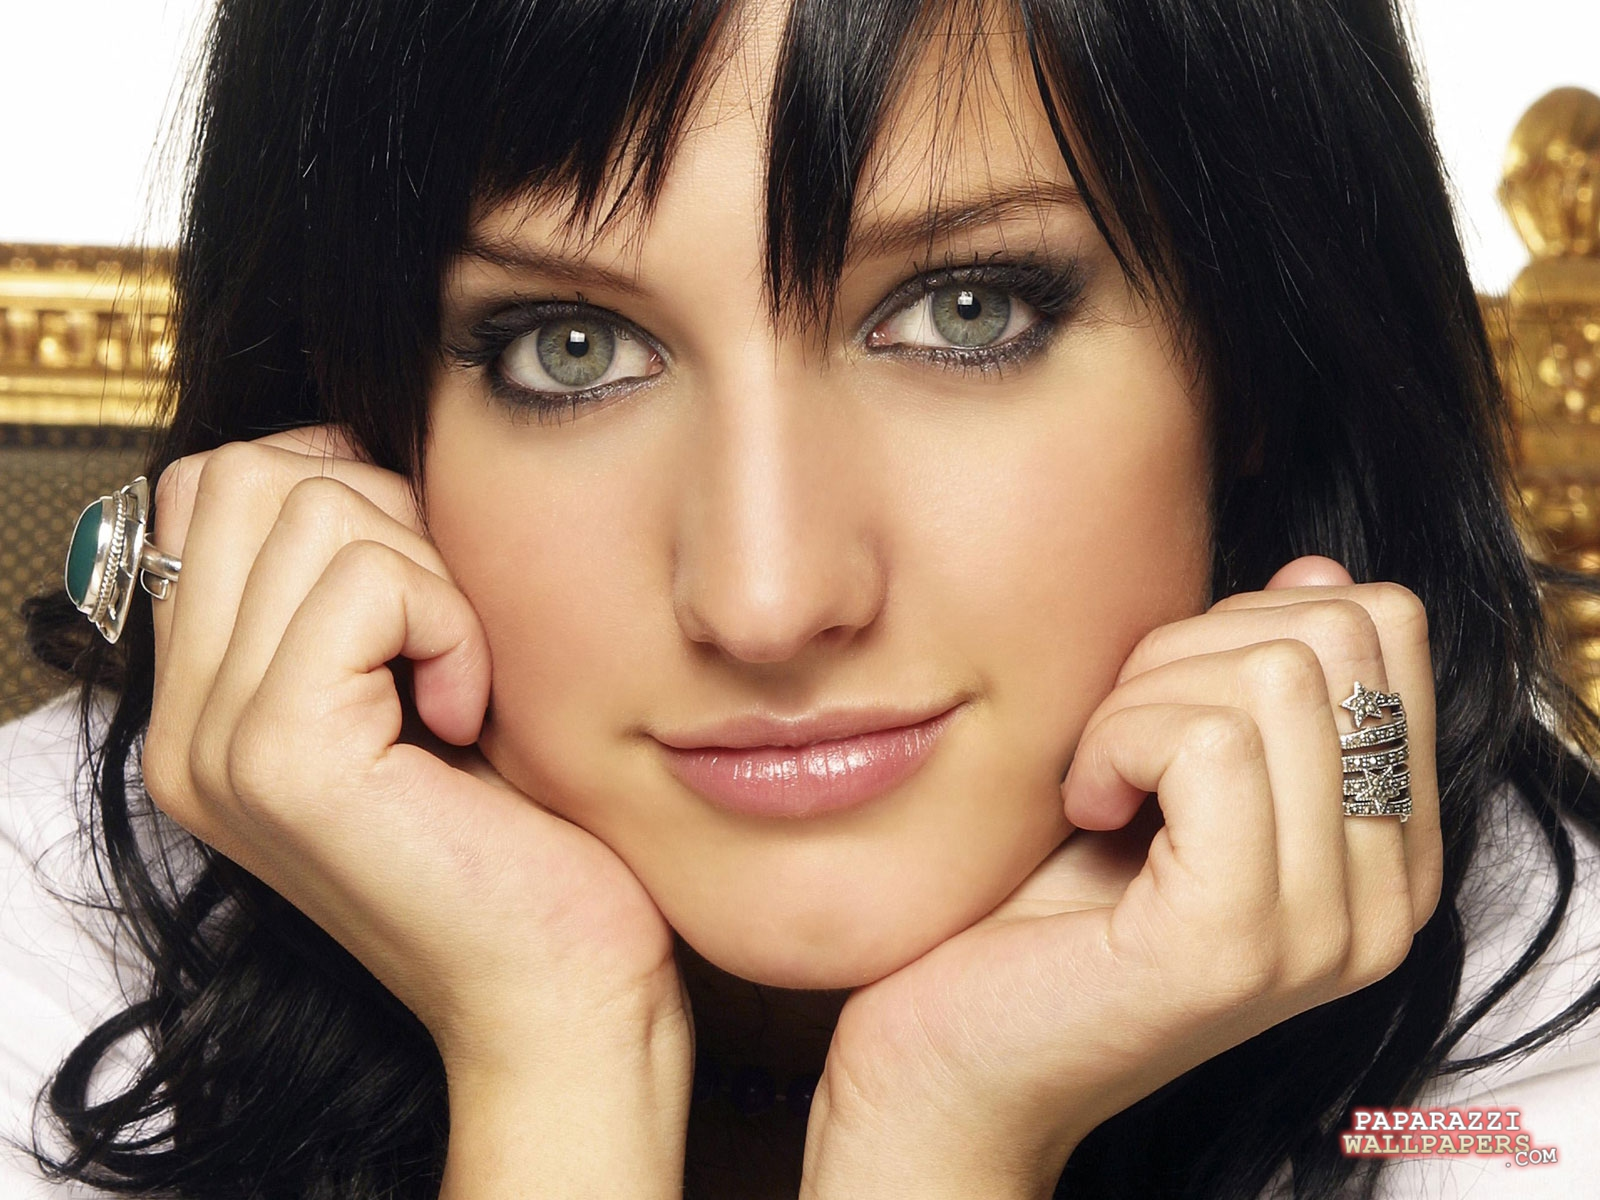 ashlee simpson wallpapers 01